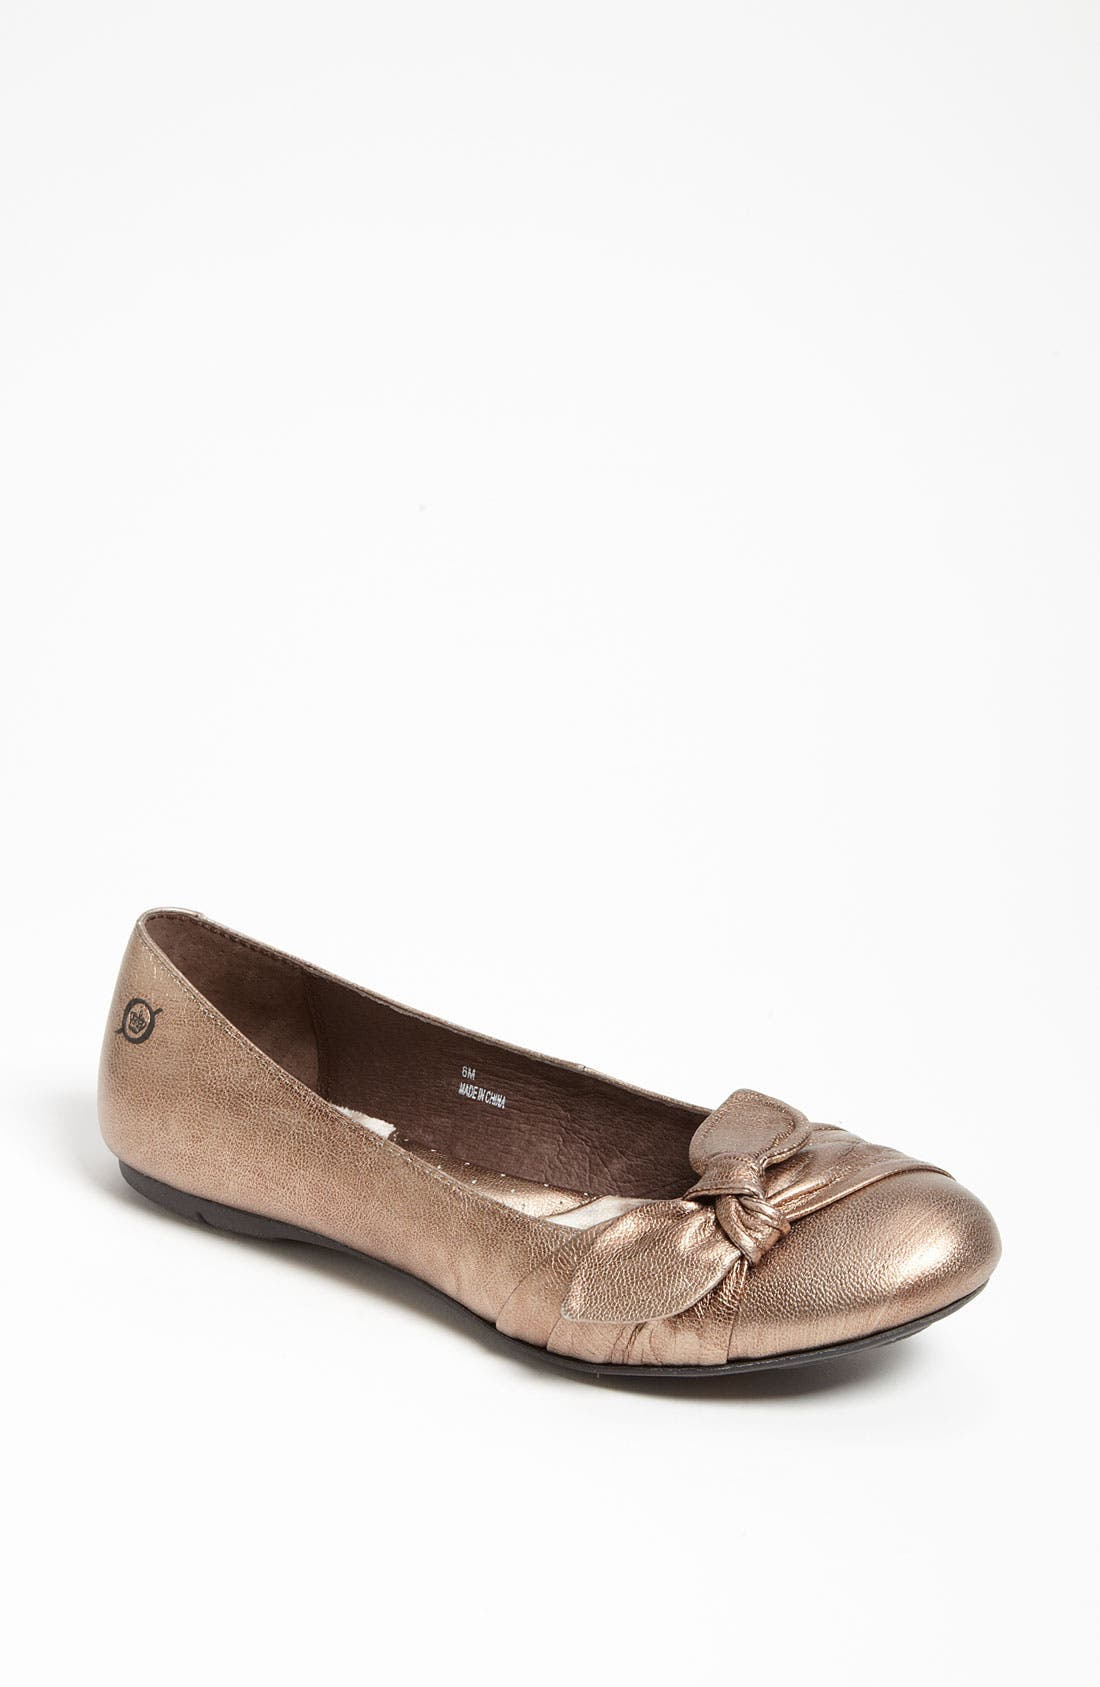 Alternate Image 1 Selected - Børn 'Molly' Flat (Online Exclusive)